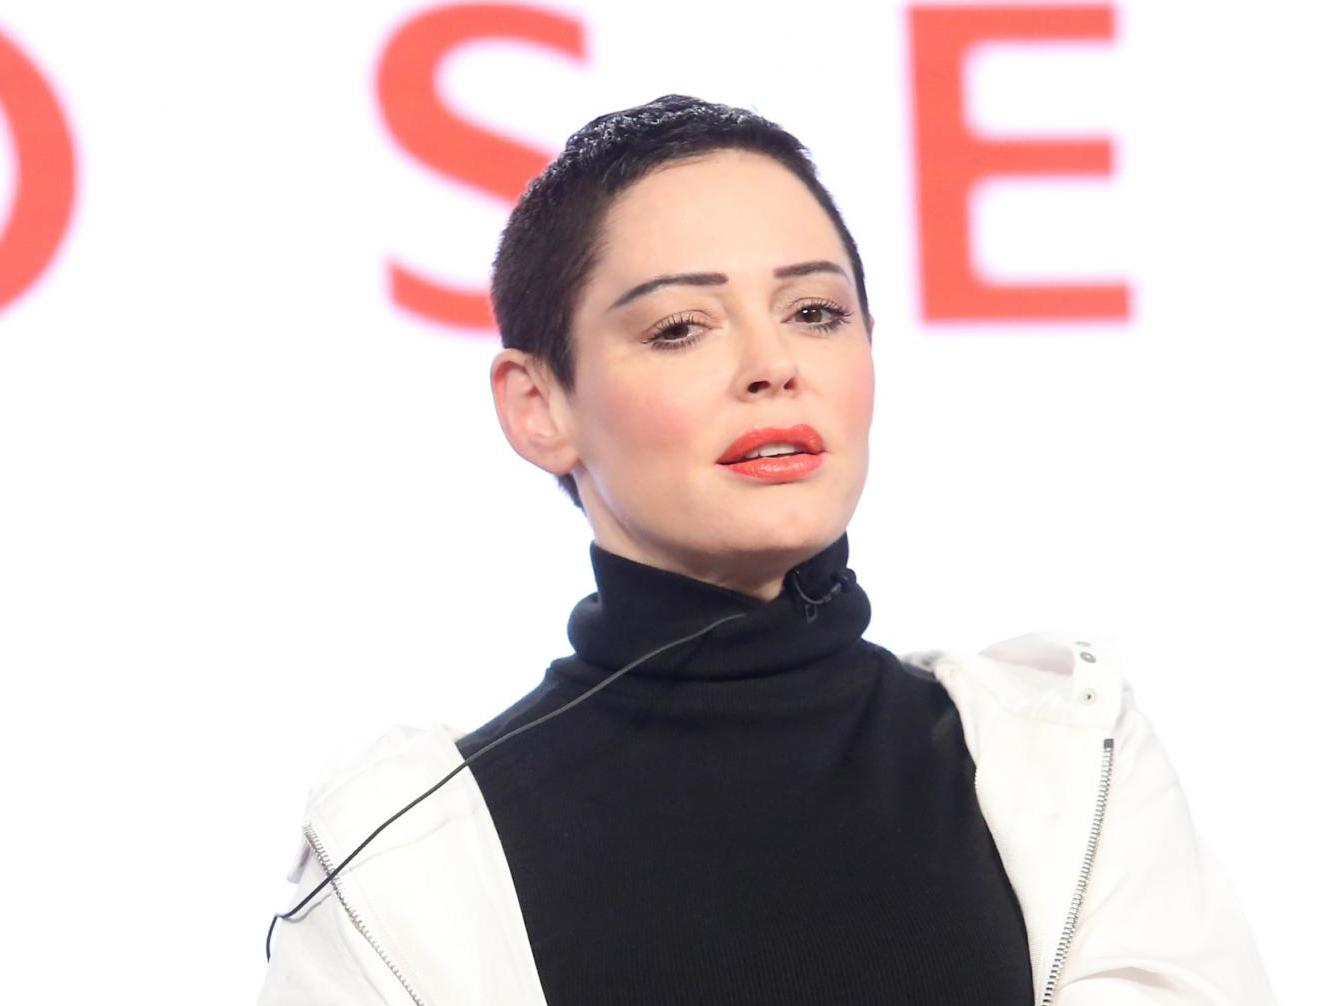 Rose McGowan says she used 'tactics' of predators to make media pay attention to Weinstein allegations